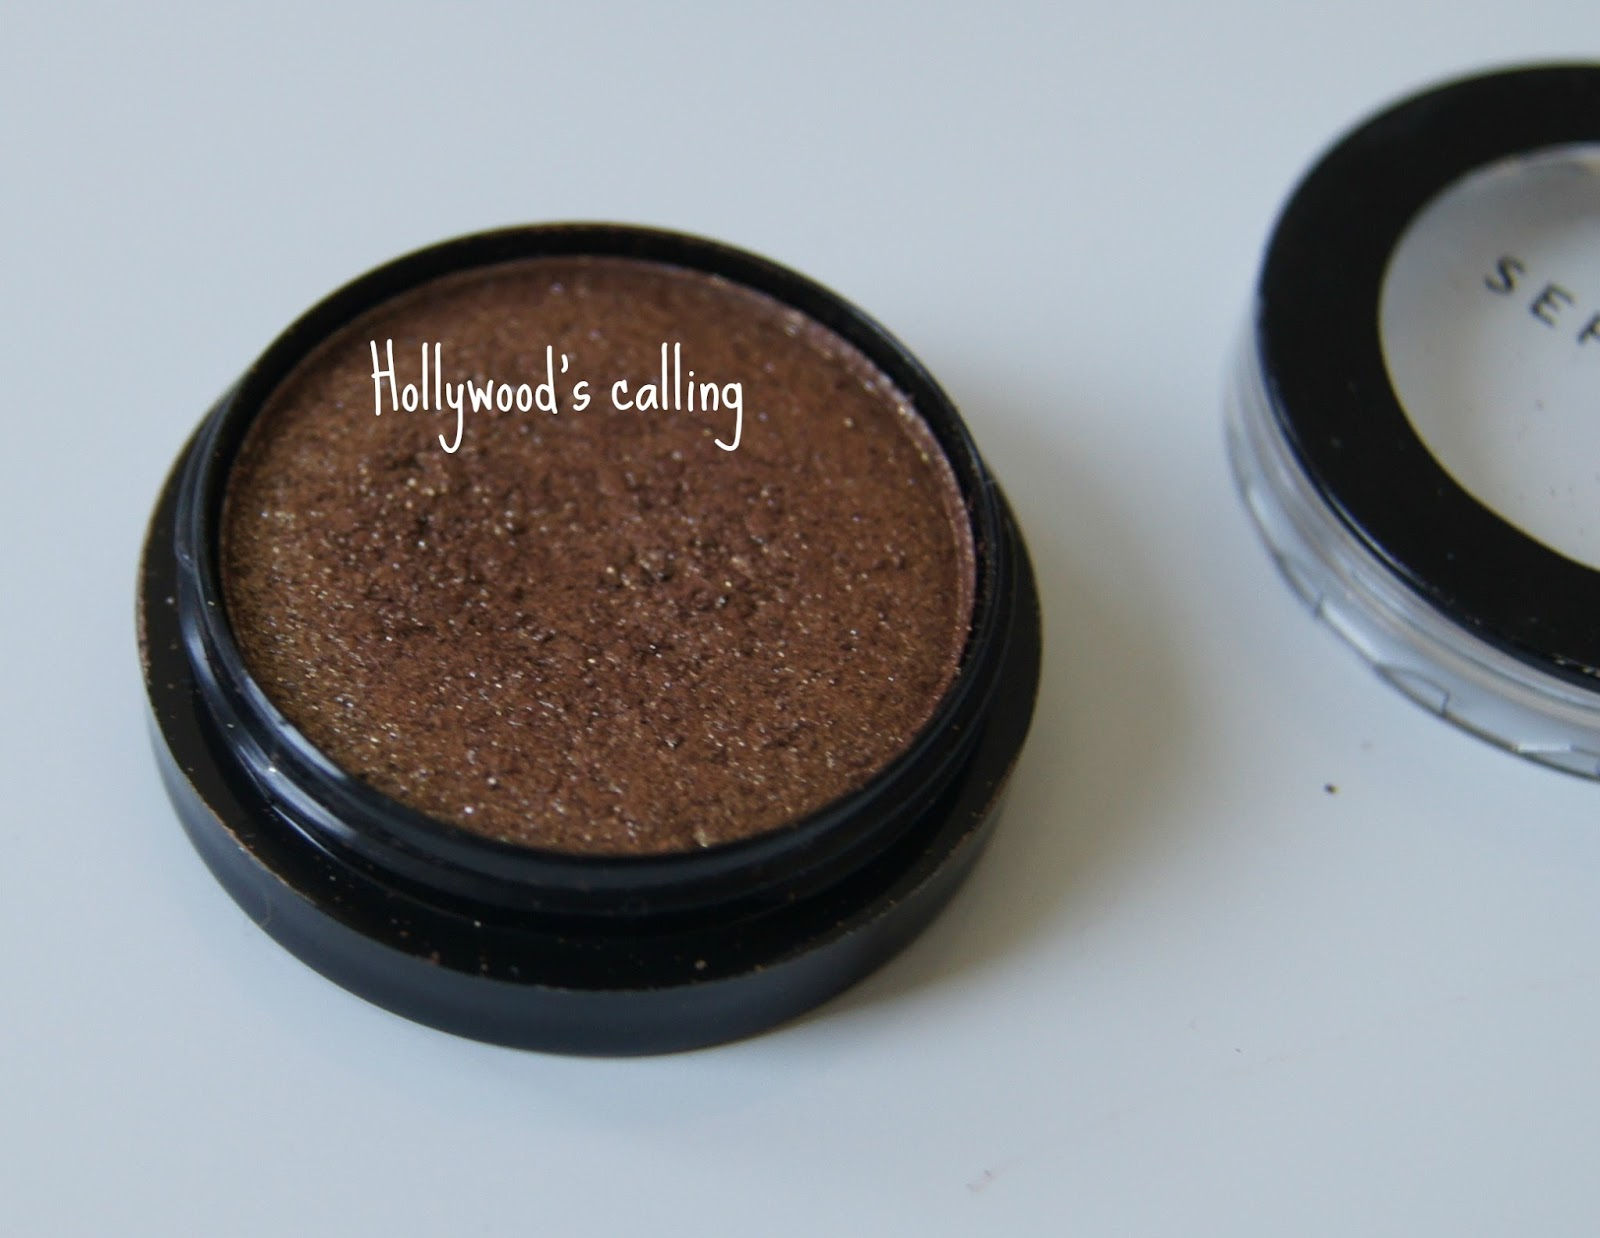 Sephora Colorful eyeshadow review